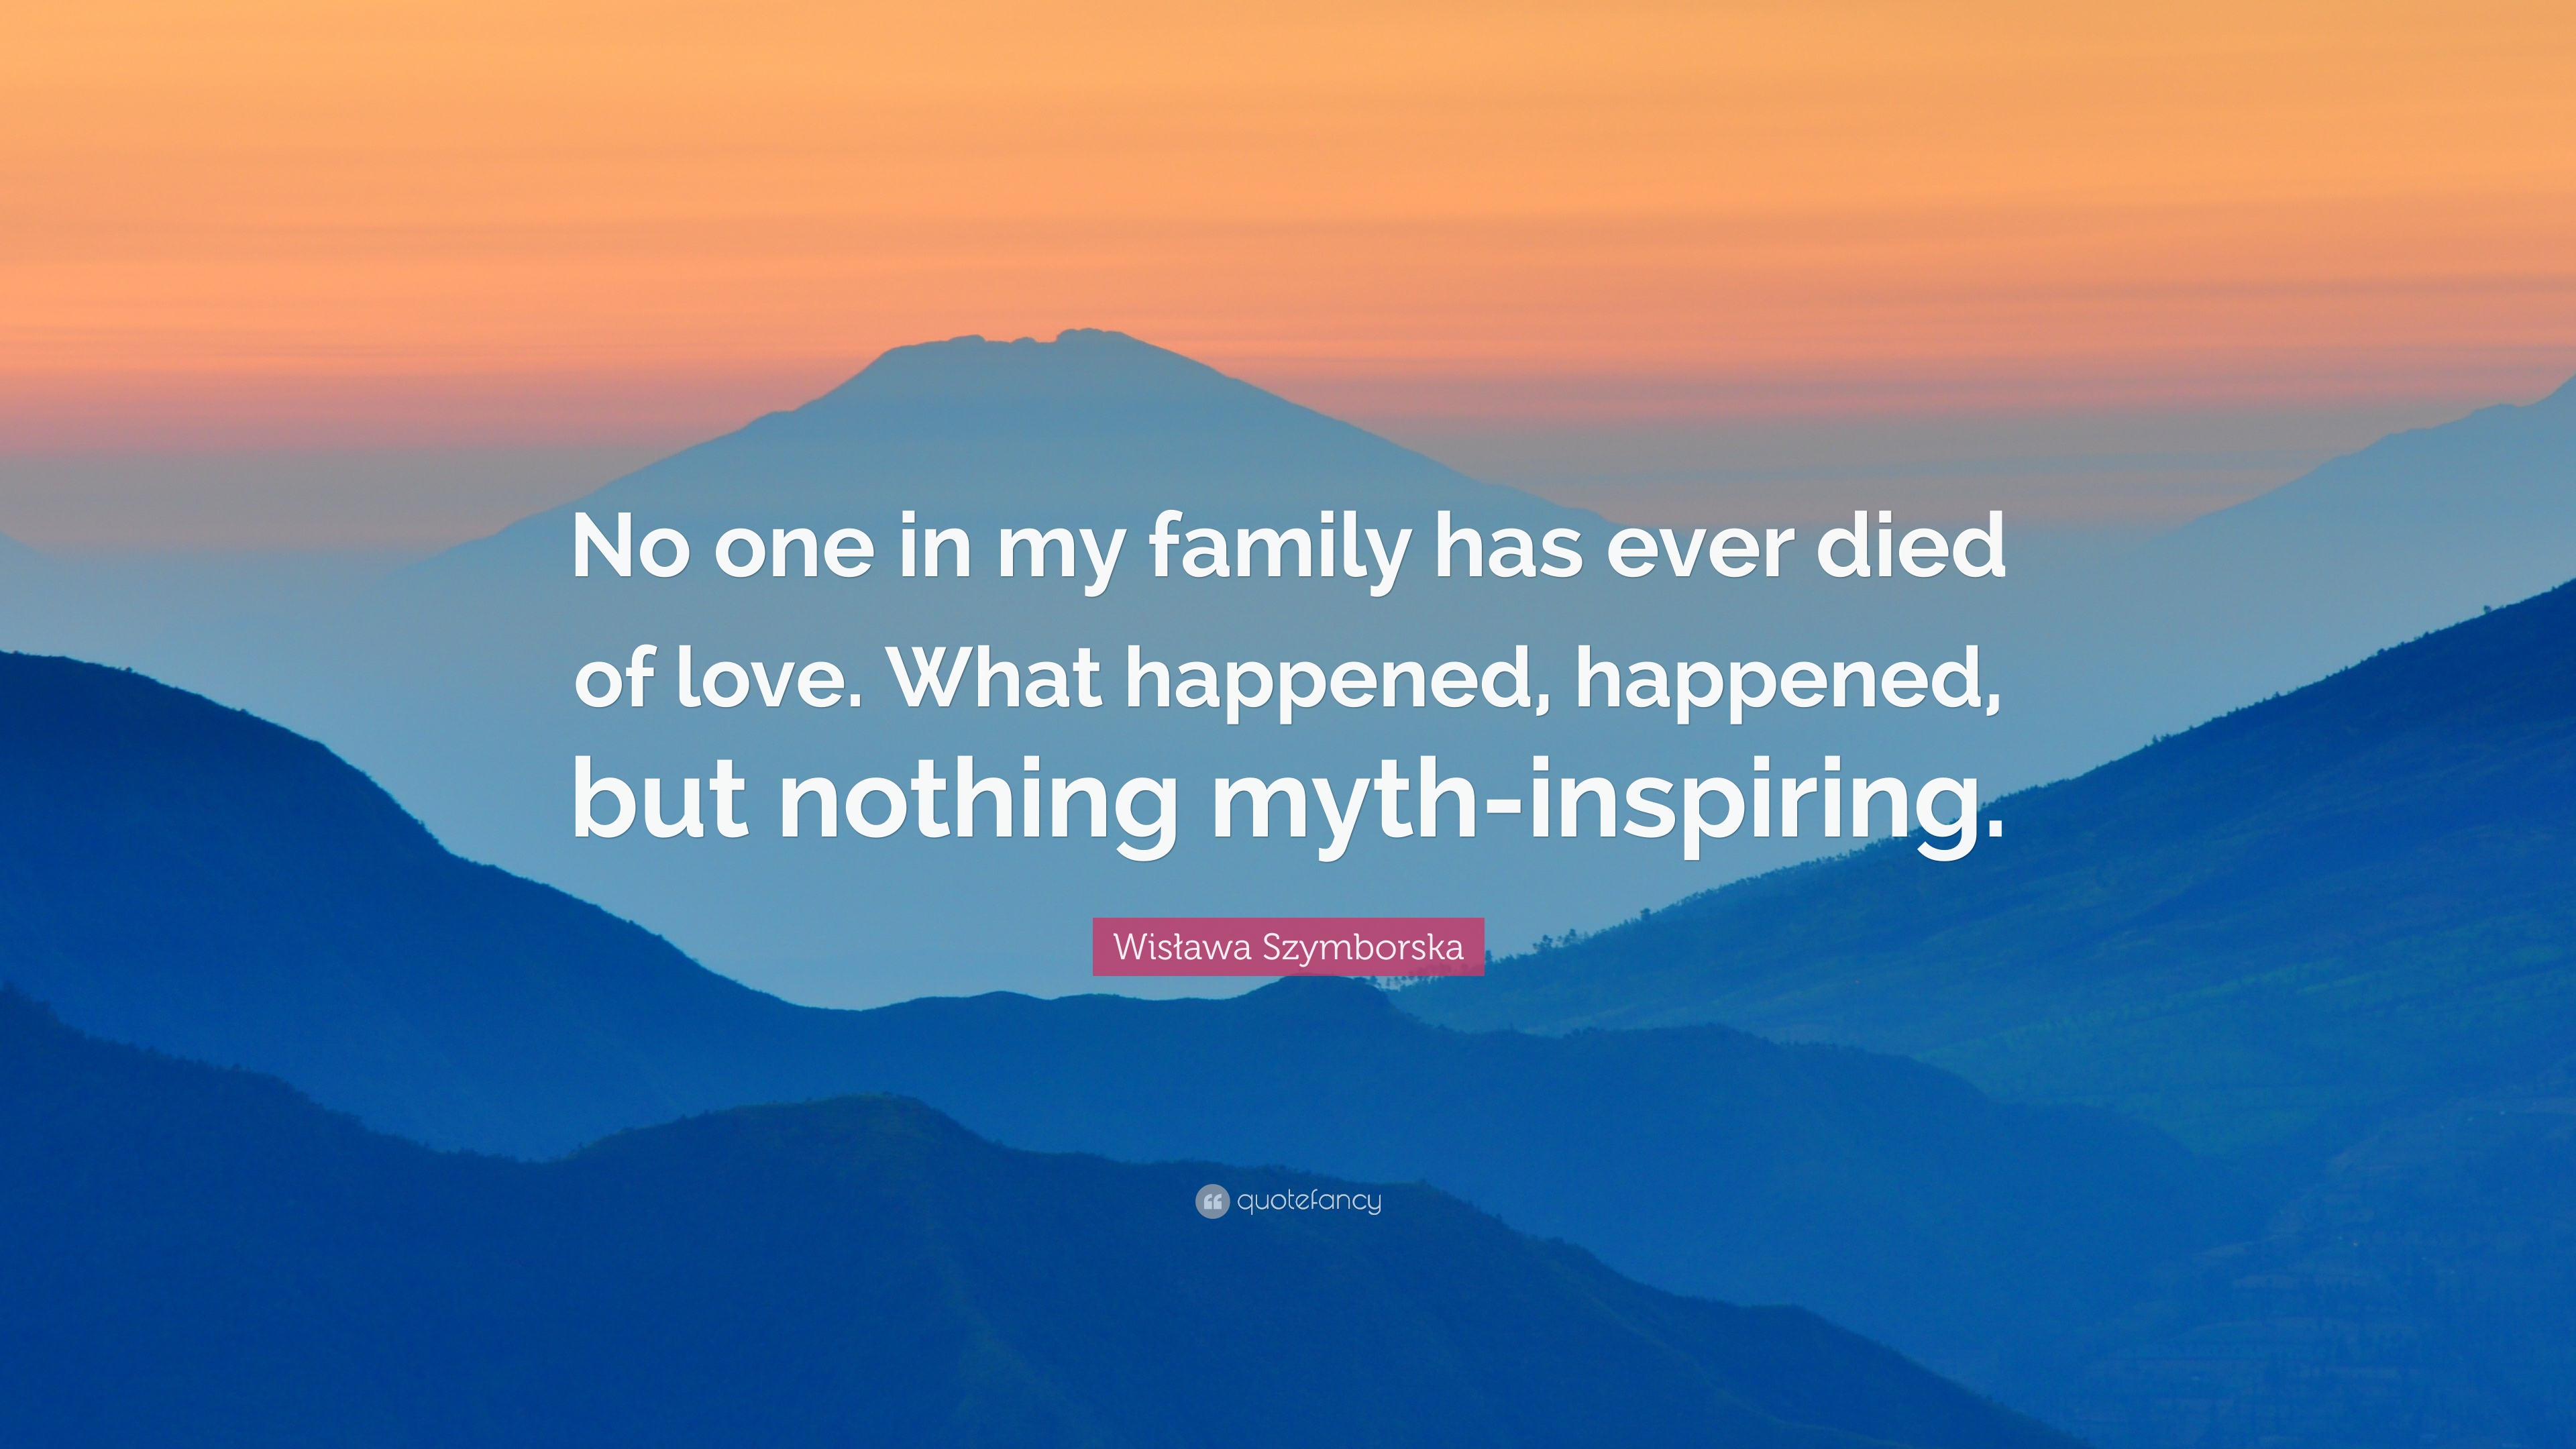 """Inspirational Death Quotes For Loved Ones Wisława Szymborska Quote """"No One In My Family Has Ever Died Of"""